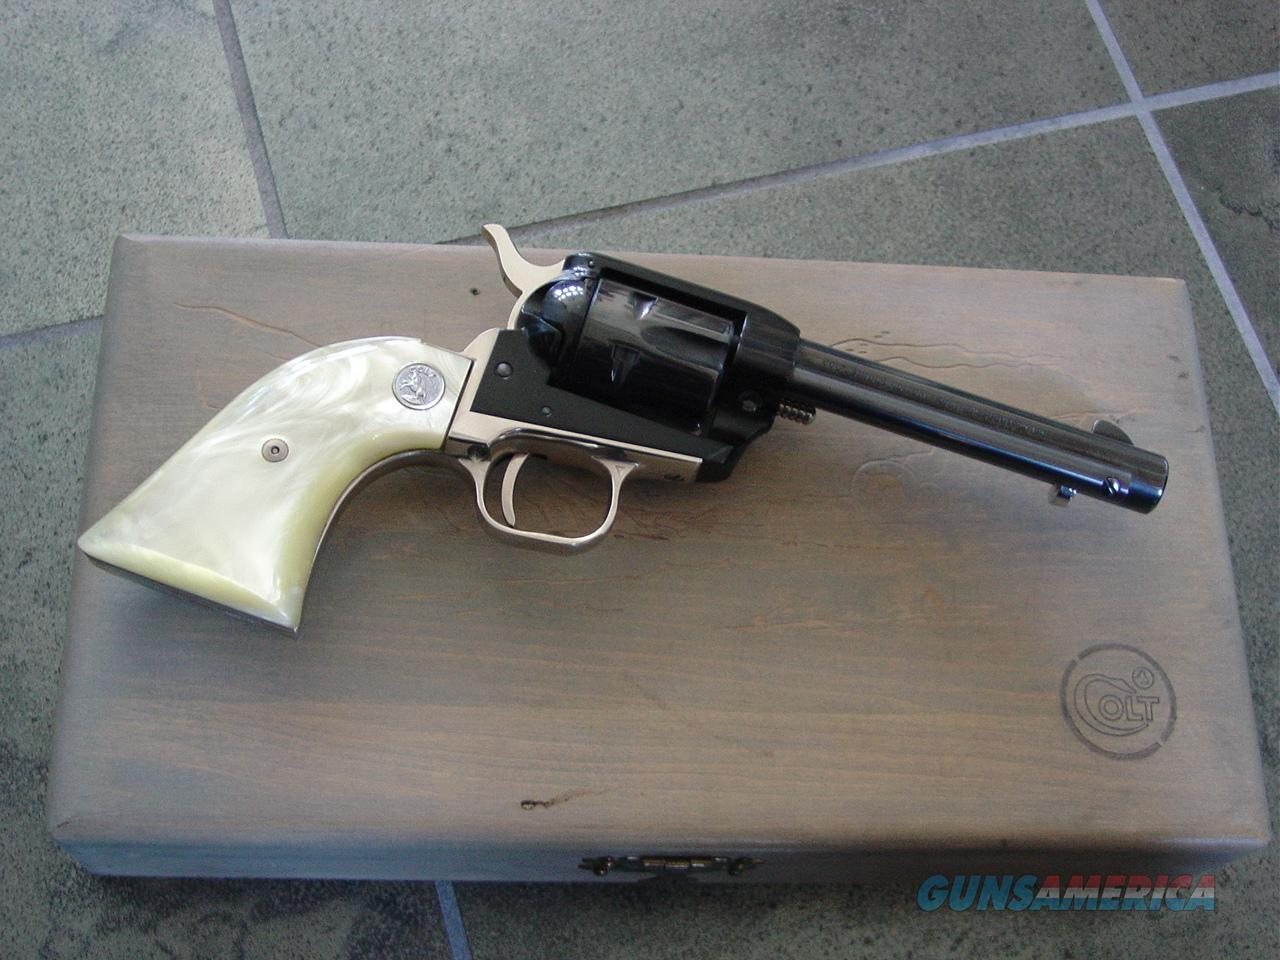 """Colt Frontier Scout Nevada Statehood Centennial Comemmorative,22LR,4 3/4"""" barrel,made in 1964,nickel plated & blued,1864-1964 stamped,nice Pearlite grips,wood presentation case & unfired !! a beauty !!  Guns > Pistols > Colt Commemorative Pistols"""